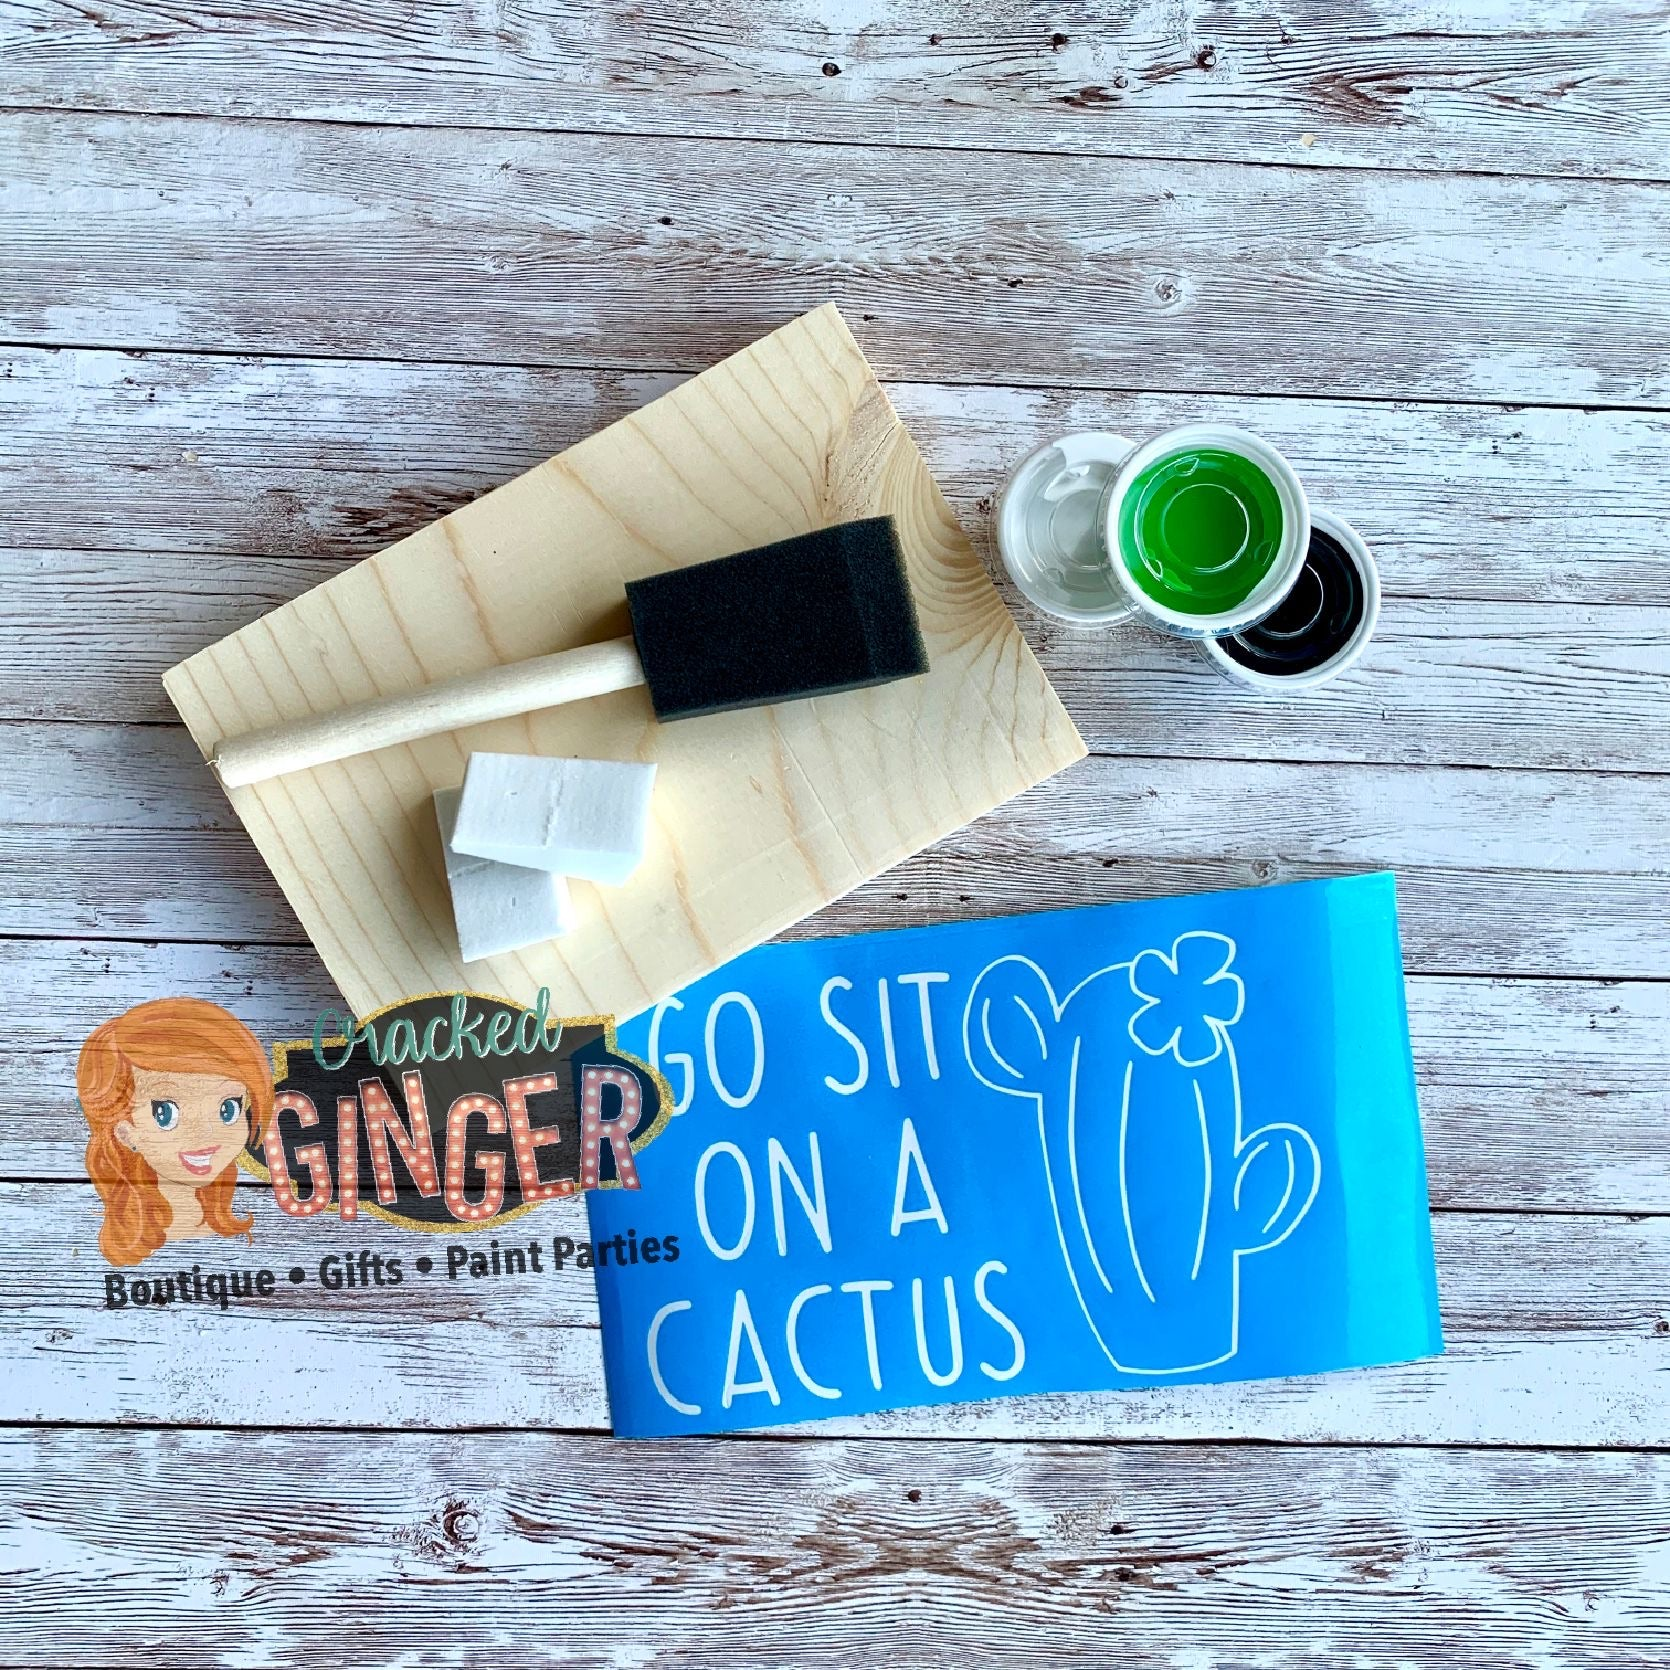 Sit on a cactus stencil sign board paint kit